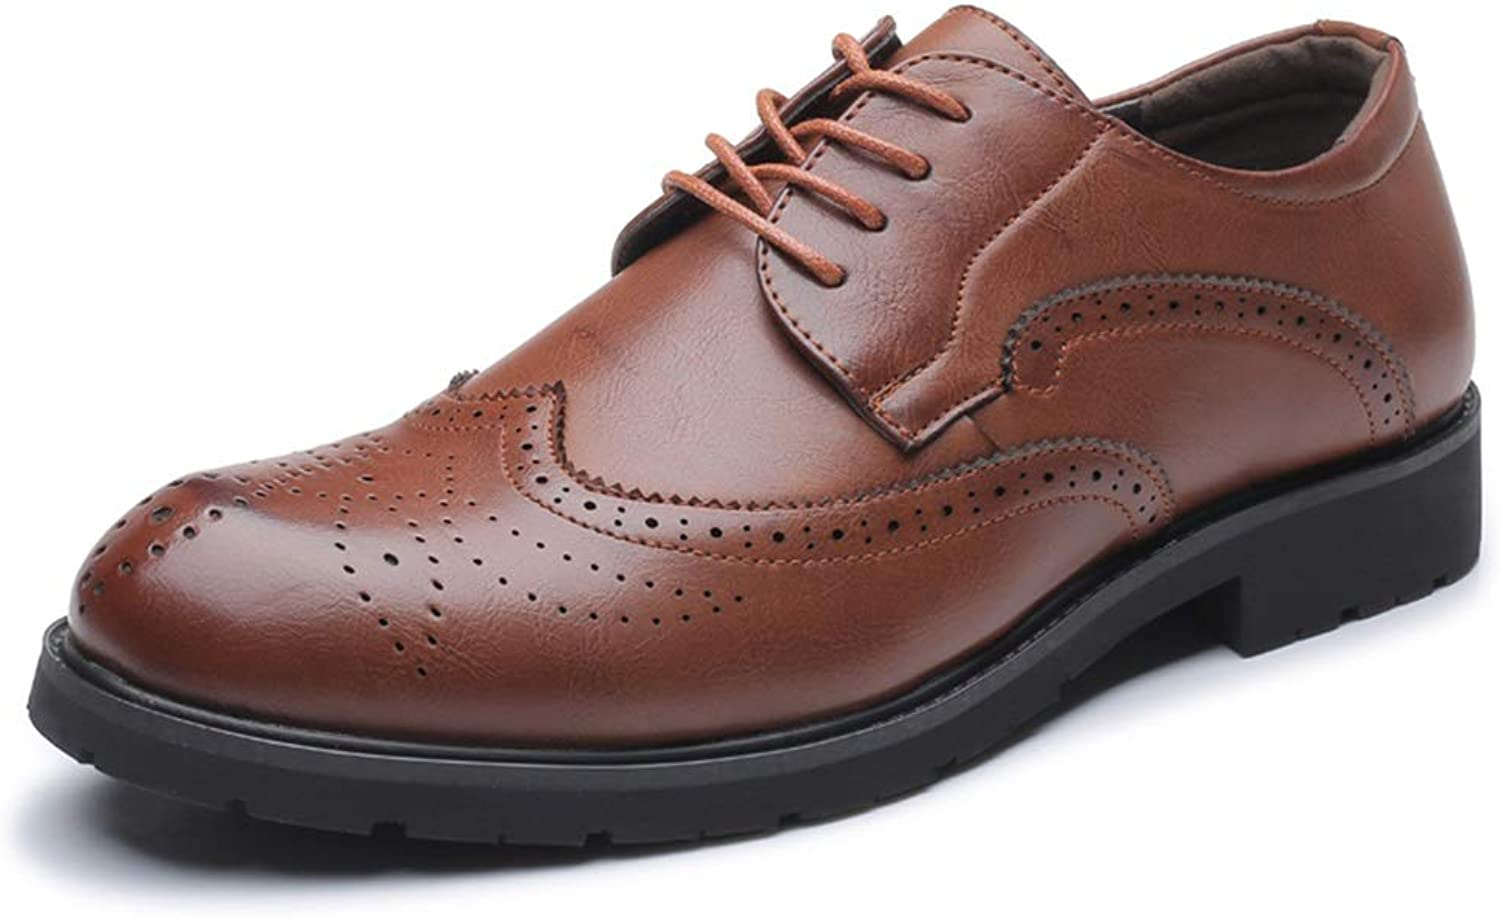 JIALUN-shoes Men's Fashion Oxford Casual Classic Comfortable Carving Lace Up Brogue Leisure shoes